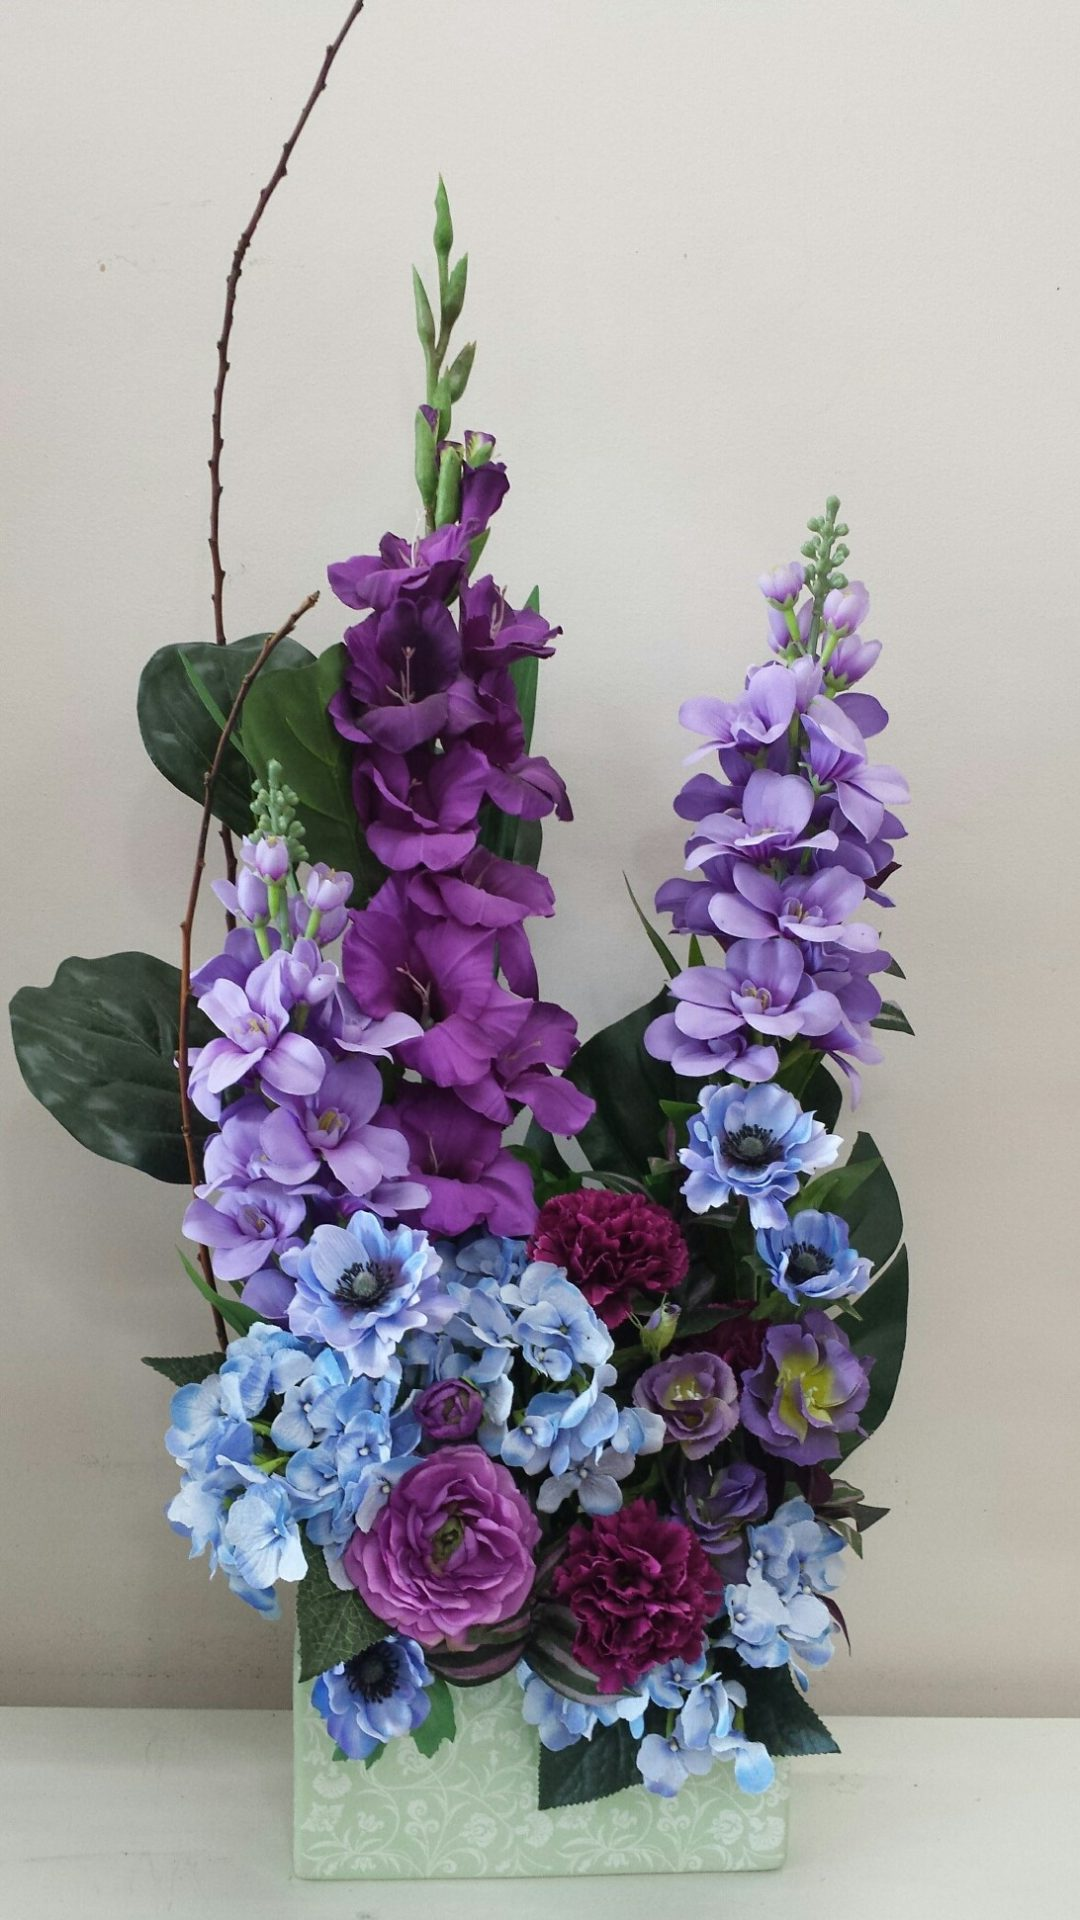 Blue and purple toned mix of spring blooms